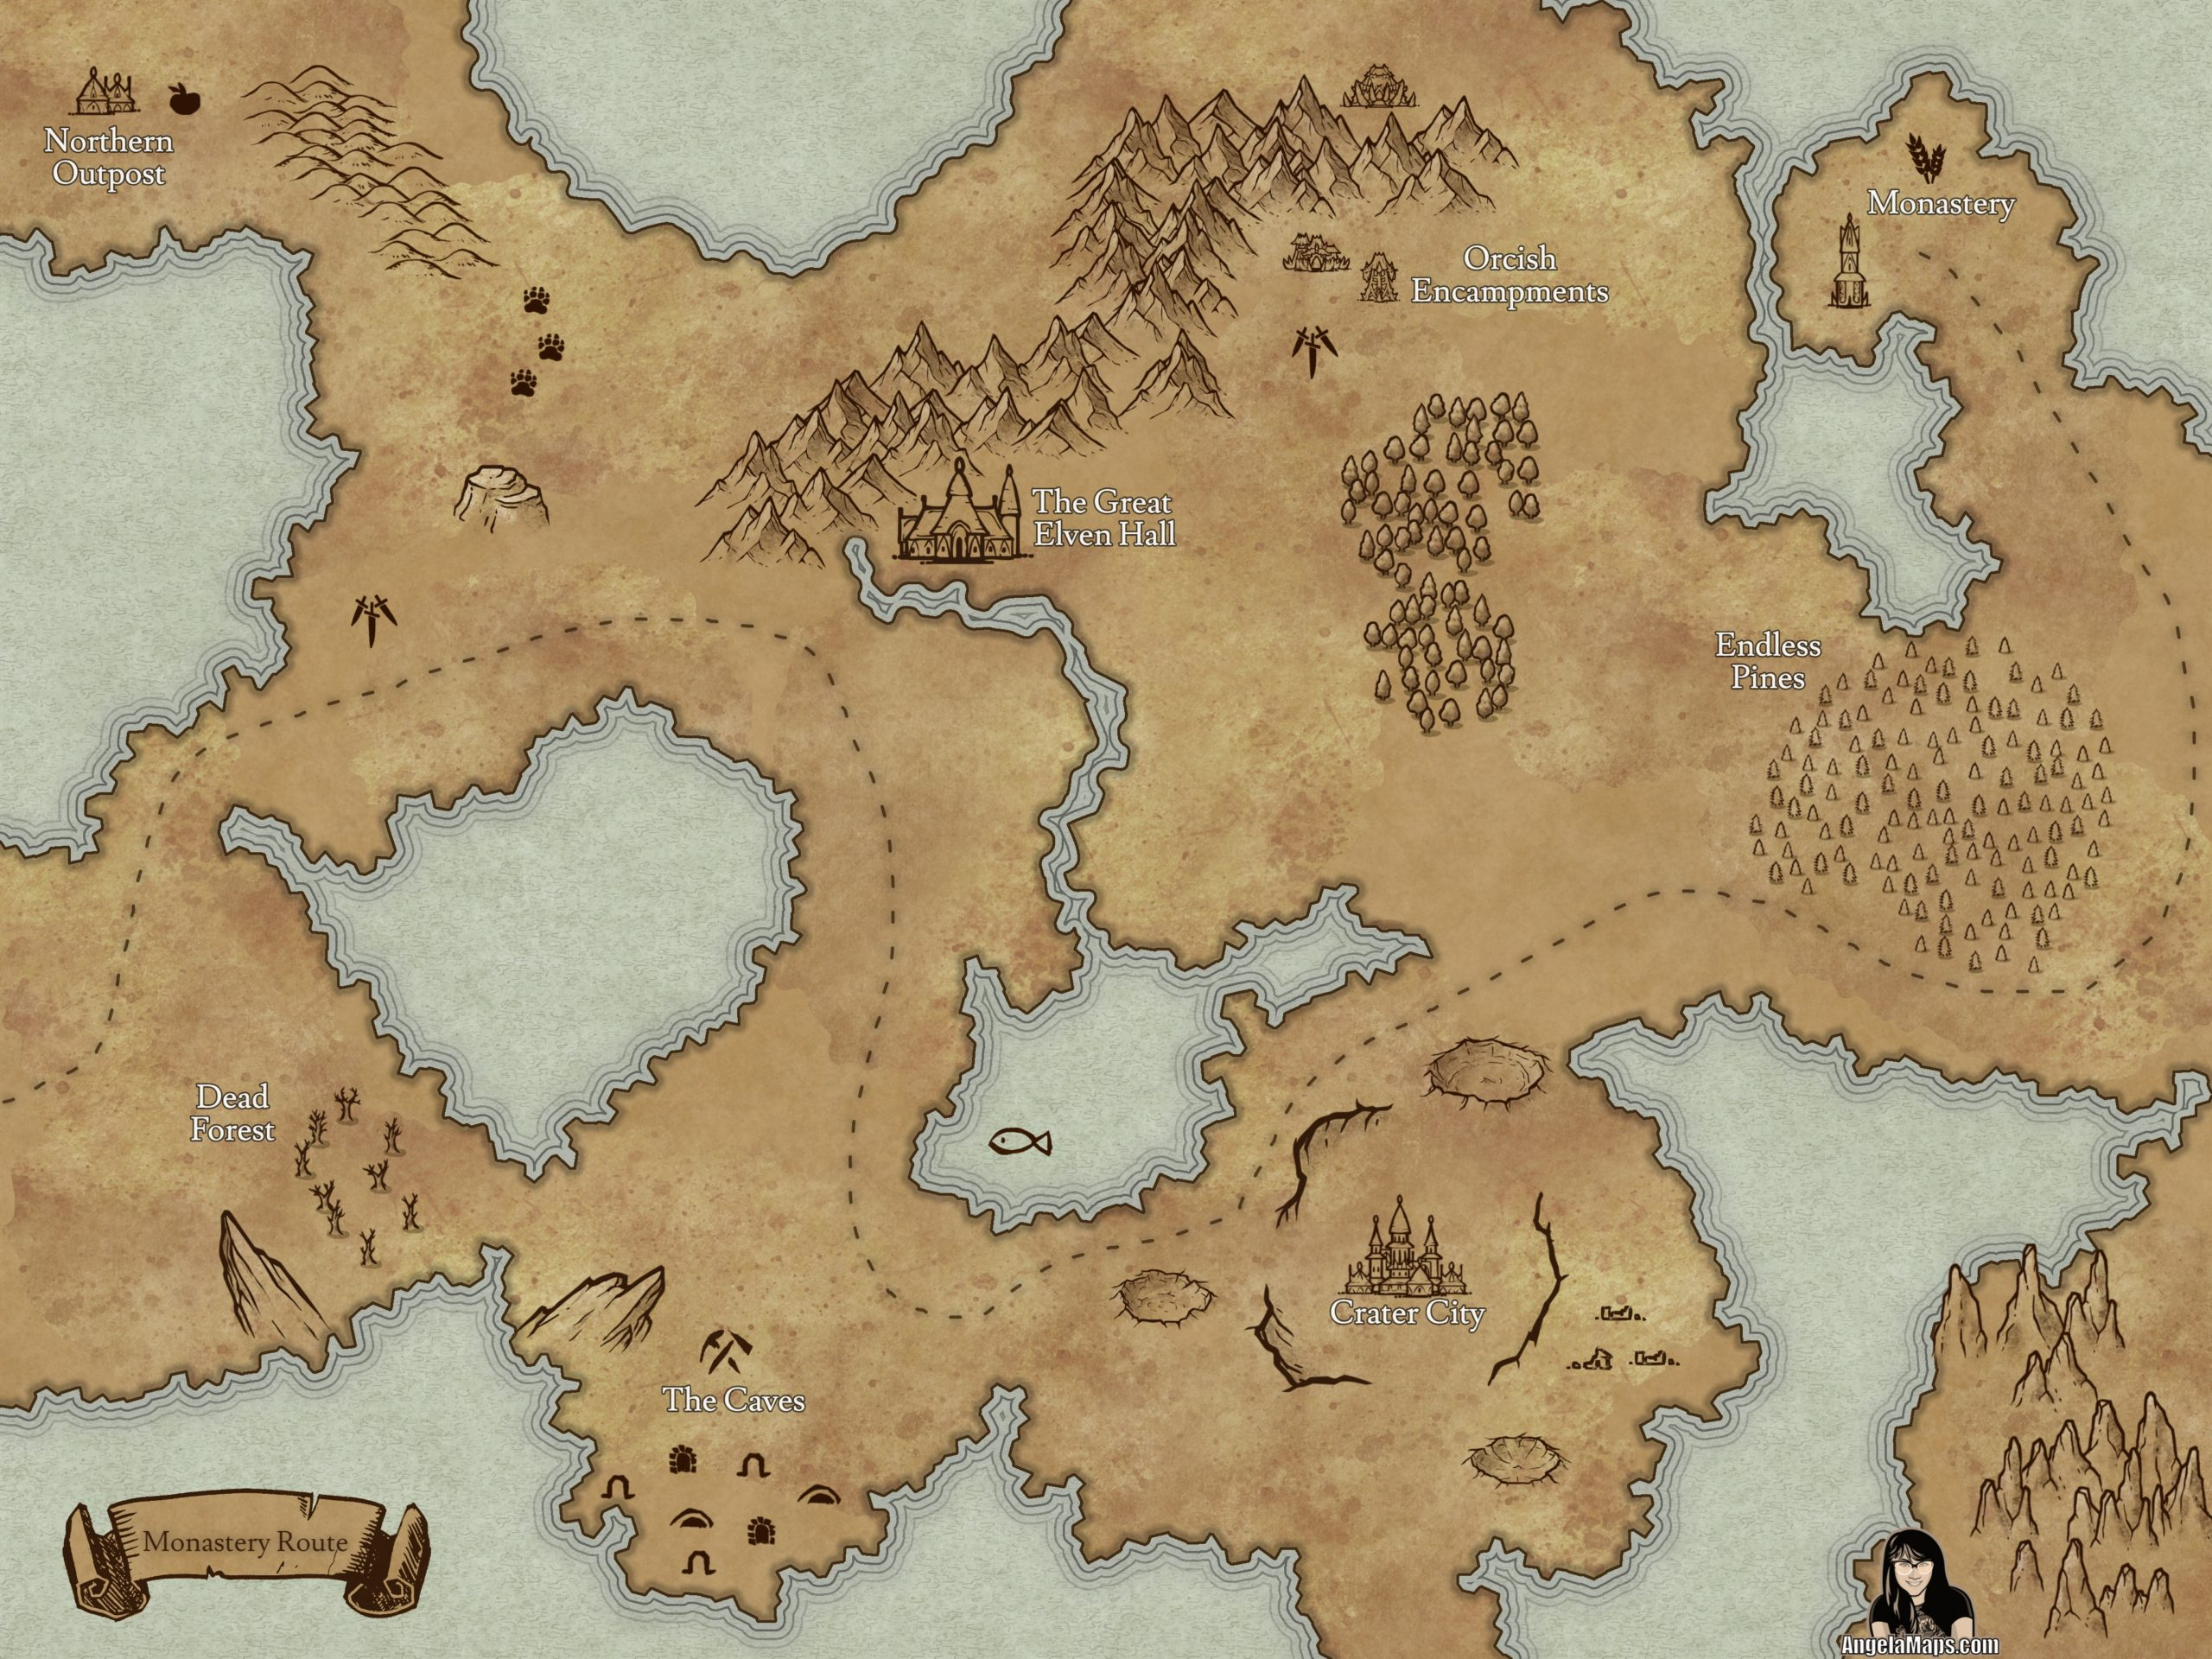 Monastary route over map for D&D